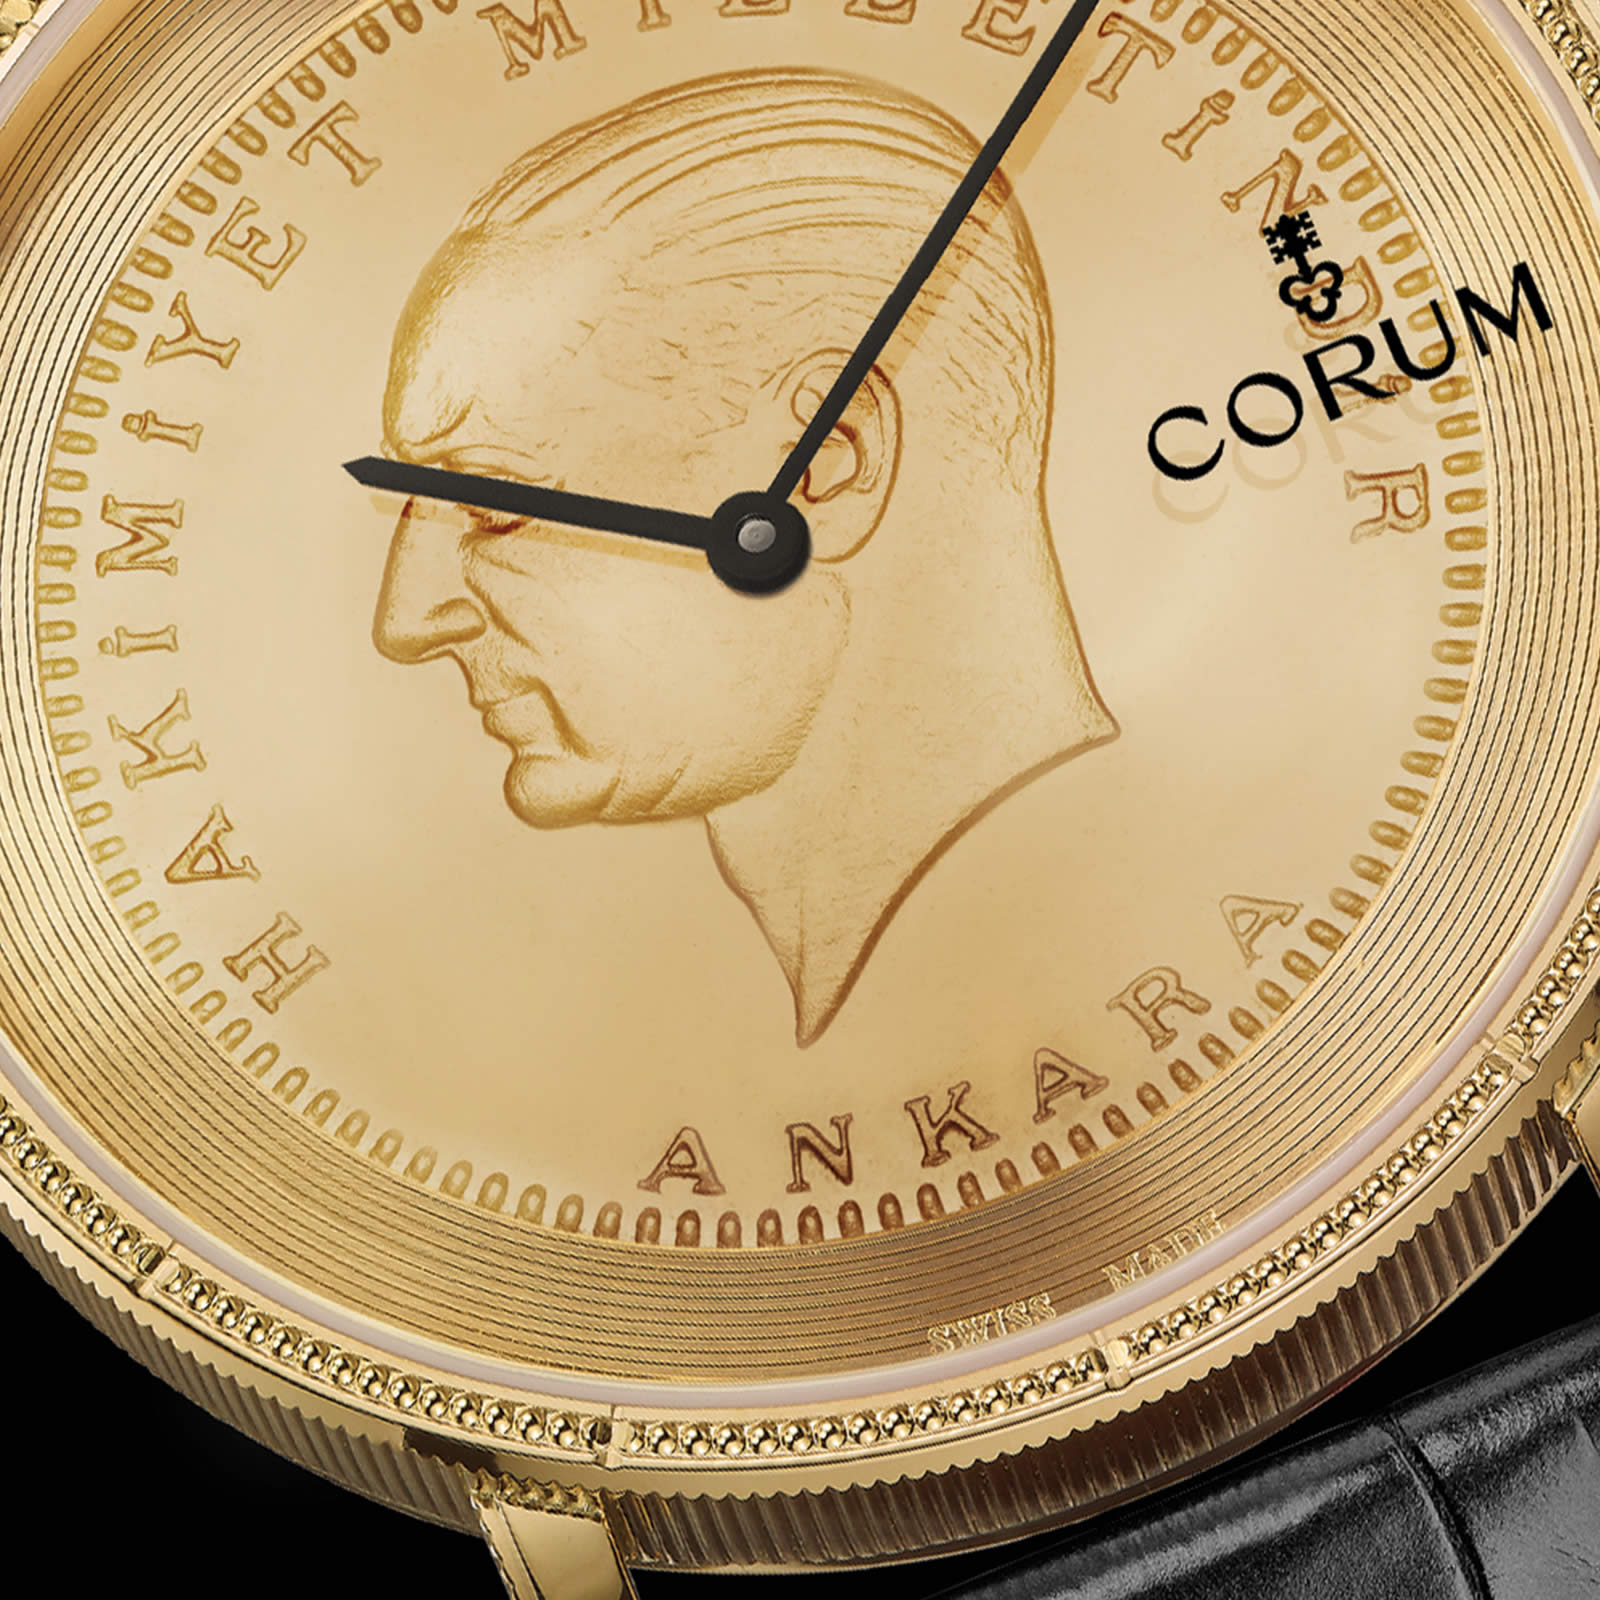 corum-heritage-artisans-coin-watch-ata-limited-edition-1-.jpg